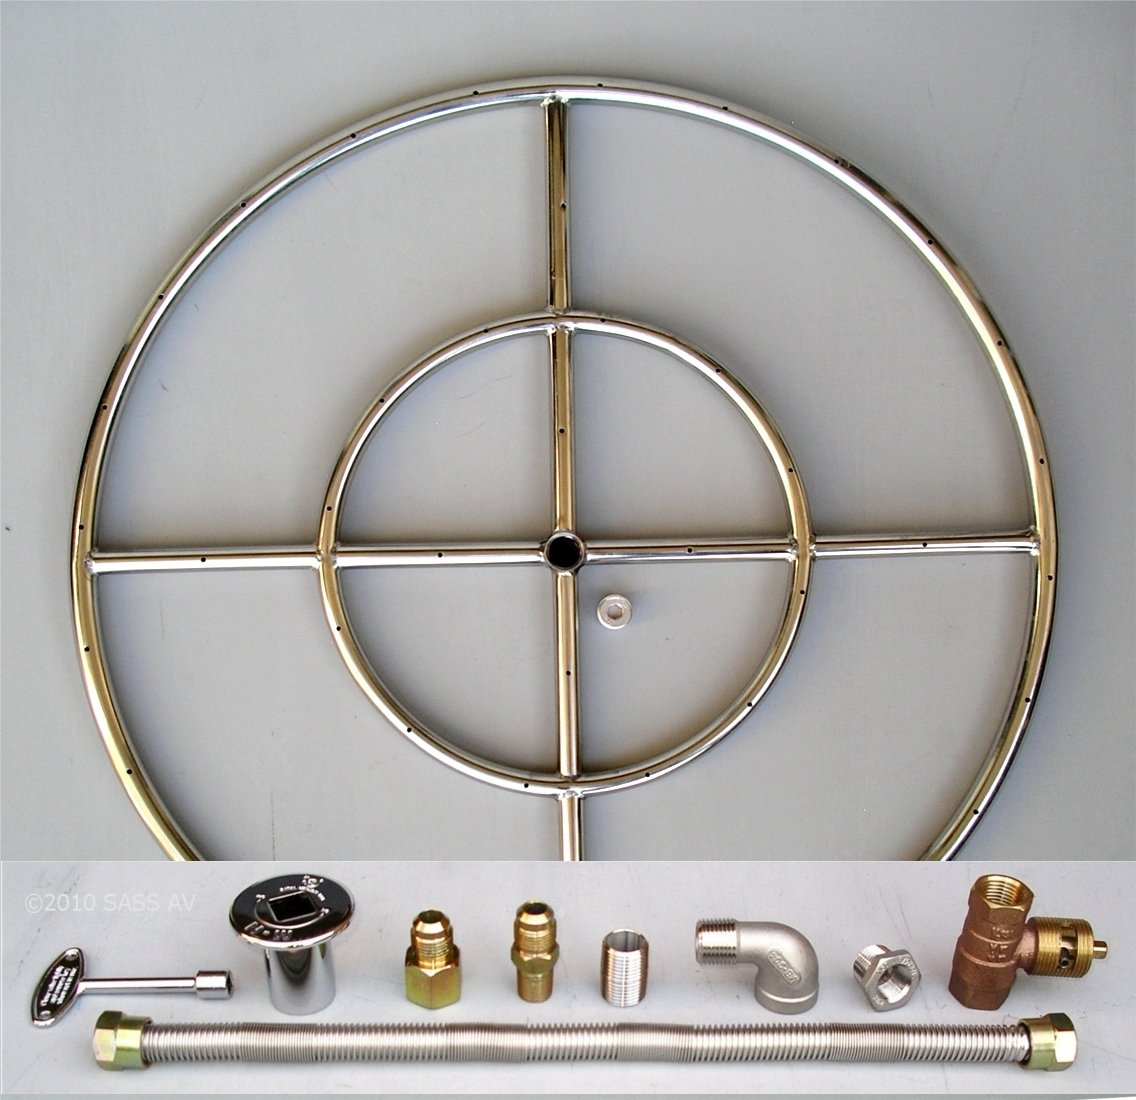 Fire Pit Ring 24 Double Stainless Steel Burner Kit with Connectors and Elbow Fireplace Glass San Diego R24KW-C